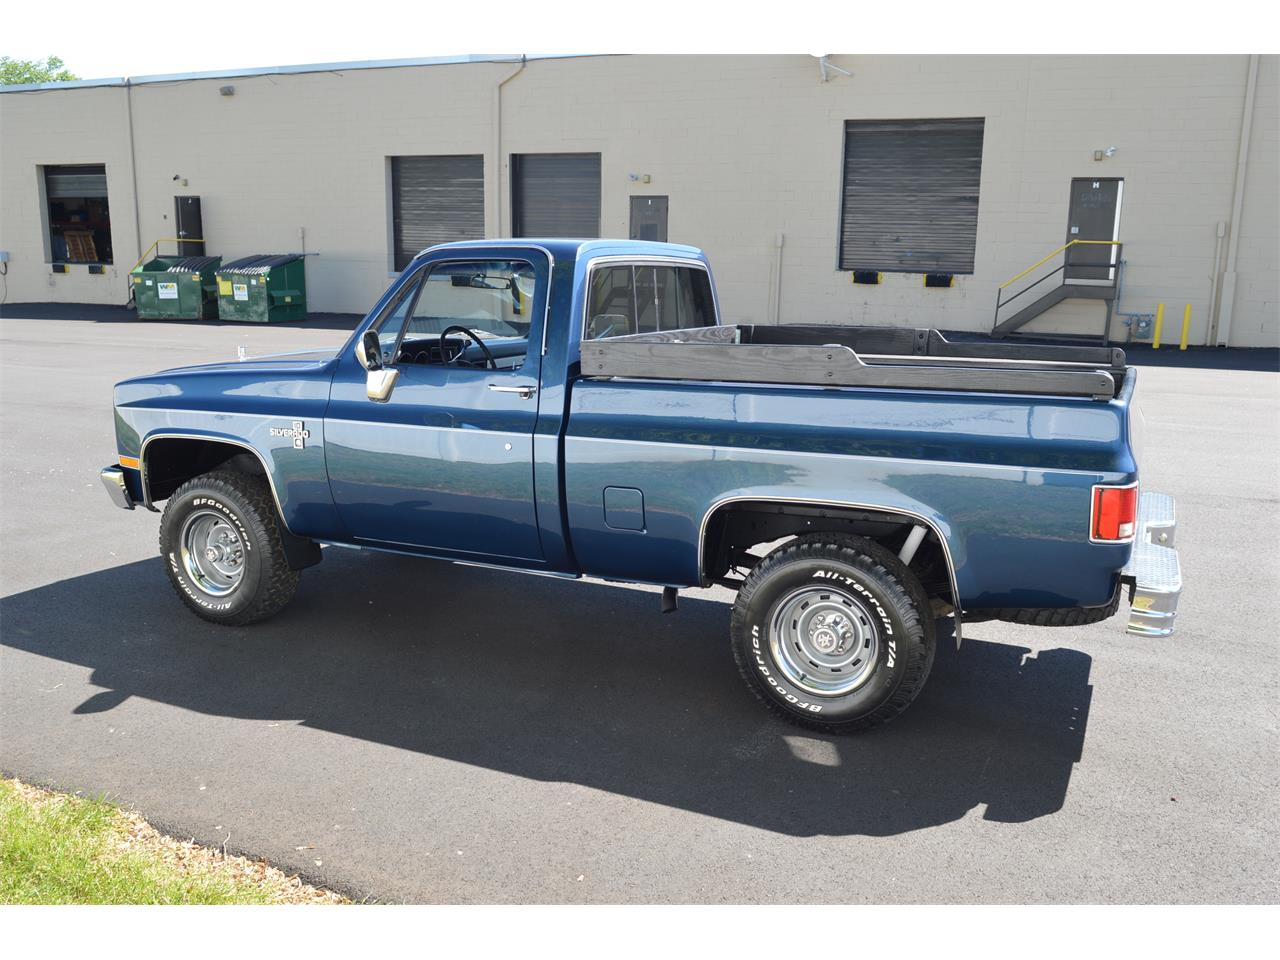 Large Picture of '84 Chevrolet K-10 located in Pennsylvania - $19,900.00 - Q66Y